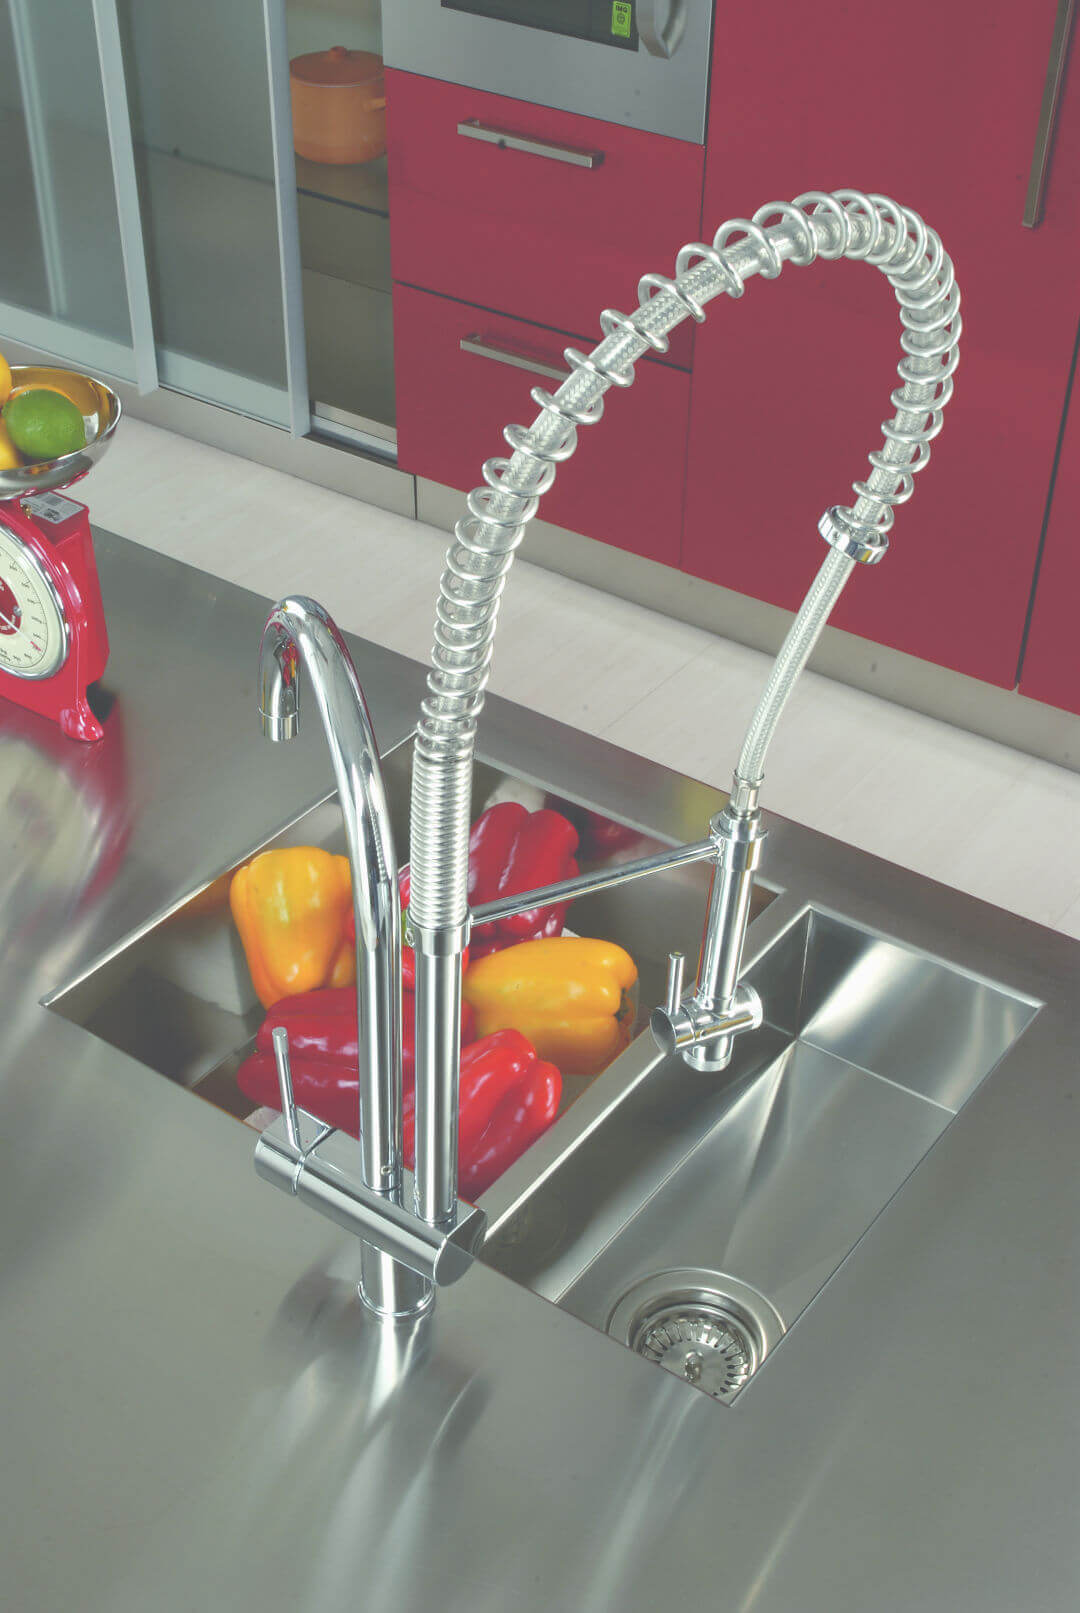 Arca Cucine Italy - Kitchen maid in Stainless Steel and Glass - Opera - Semiprofessional Gargoyle mixer